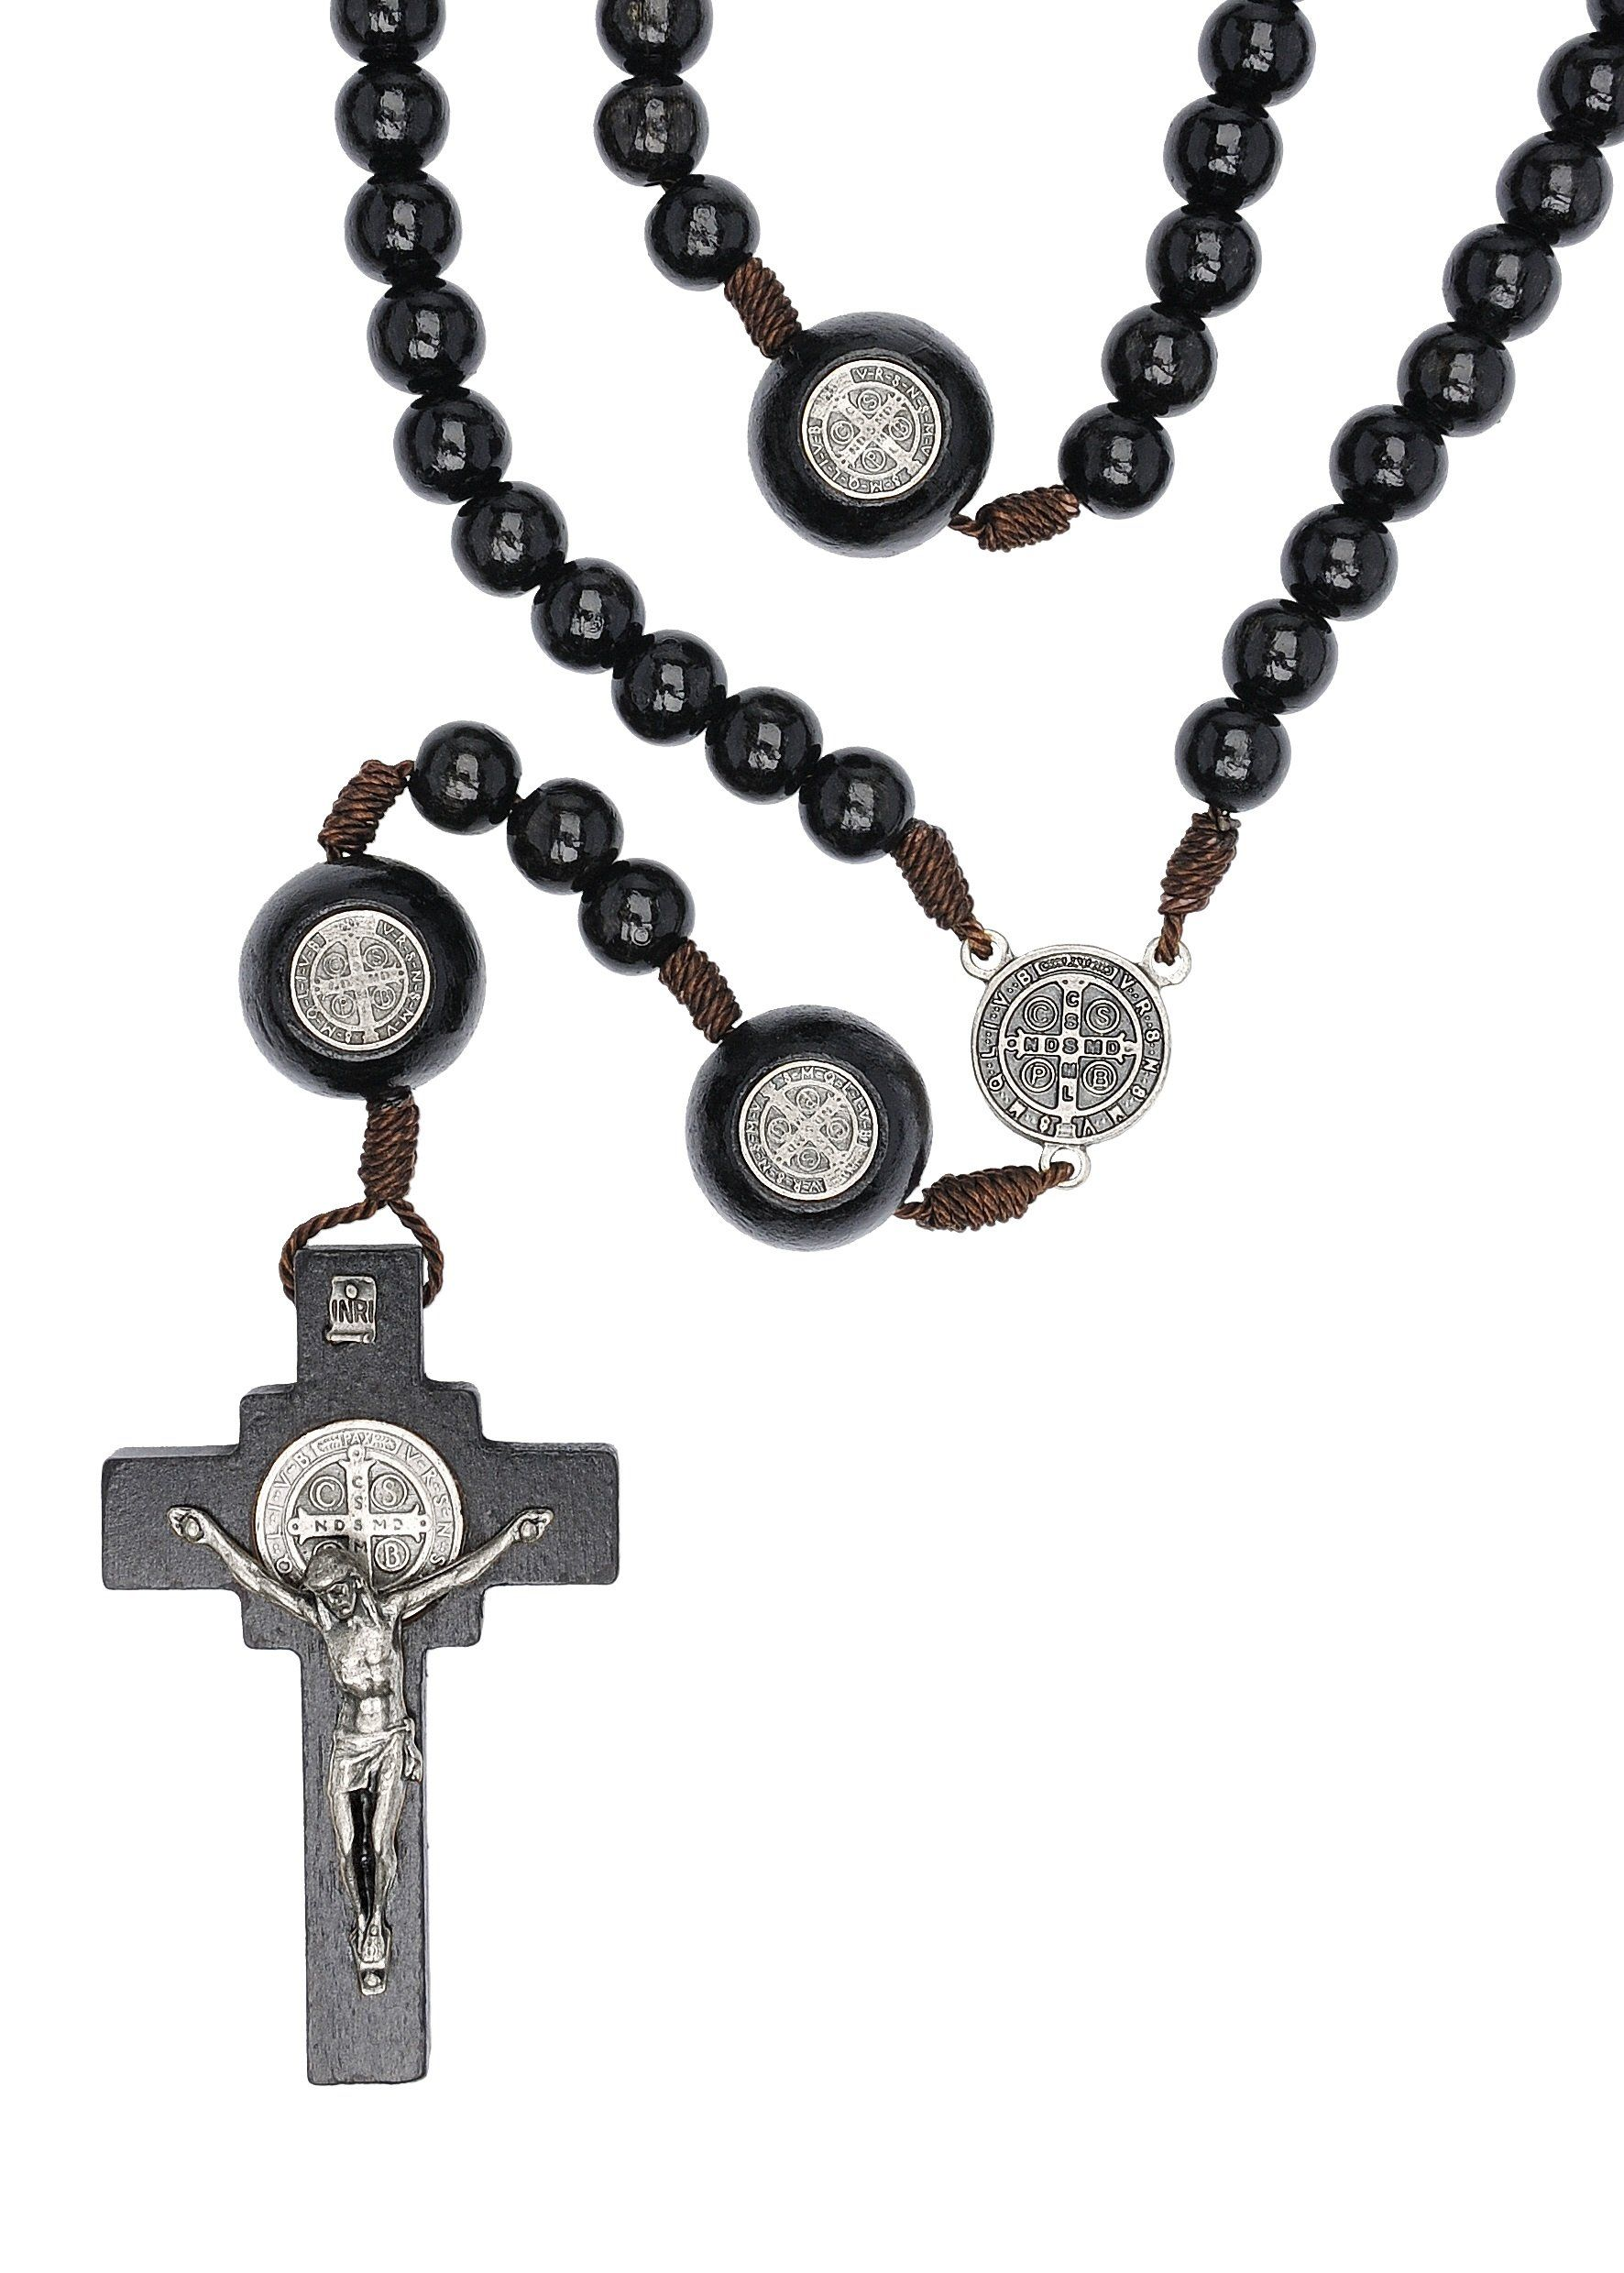 St benedict mens large intercession rosary made in brazil black